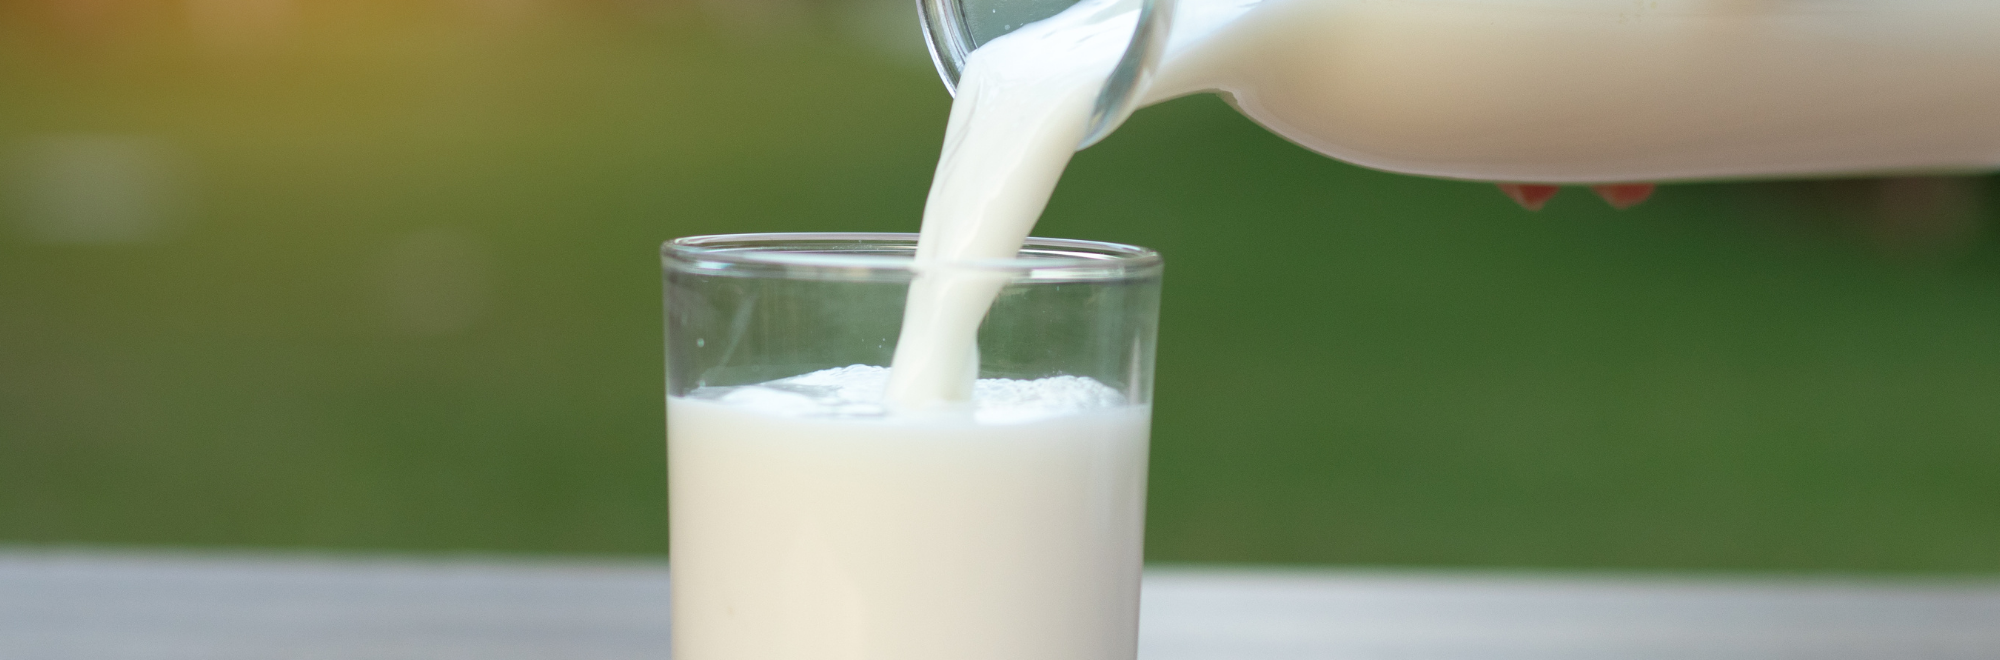 bottle of milk pouring into a glass